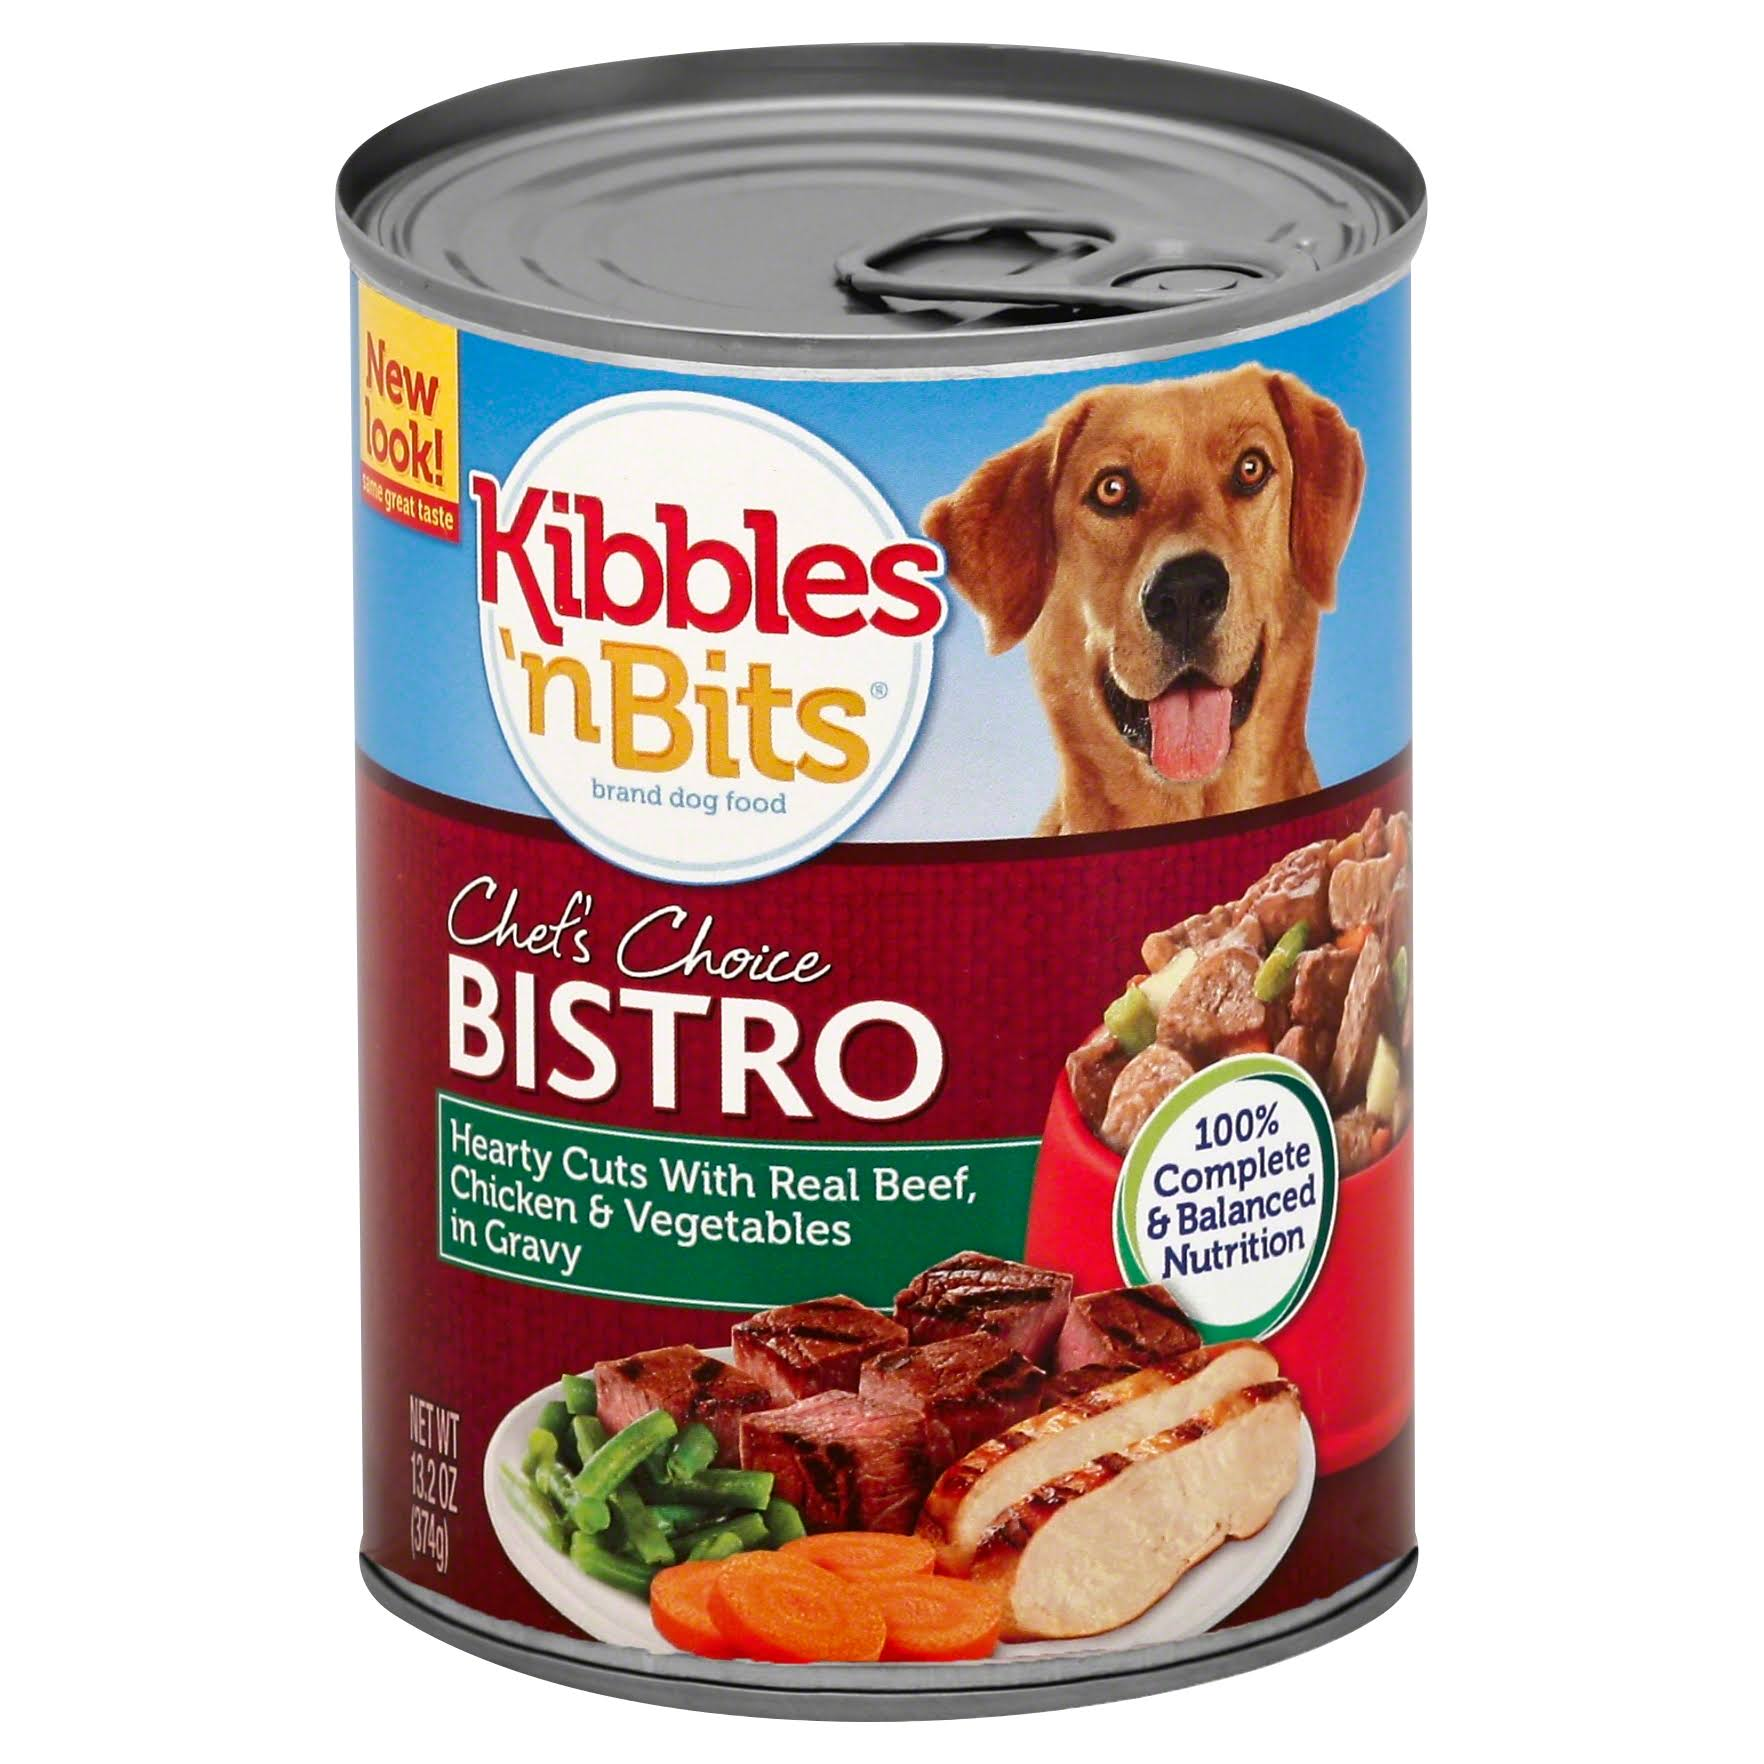 Kibbles 'n Bits Hearty Cuts Wet Dog Food - Real Beef, Chicken and Vegetables, 13.2oz